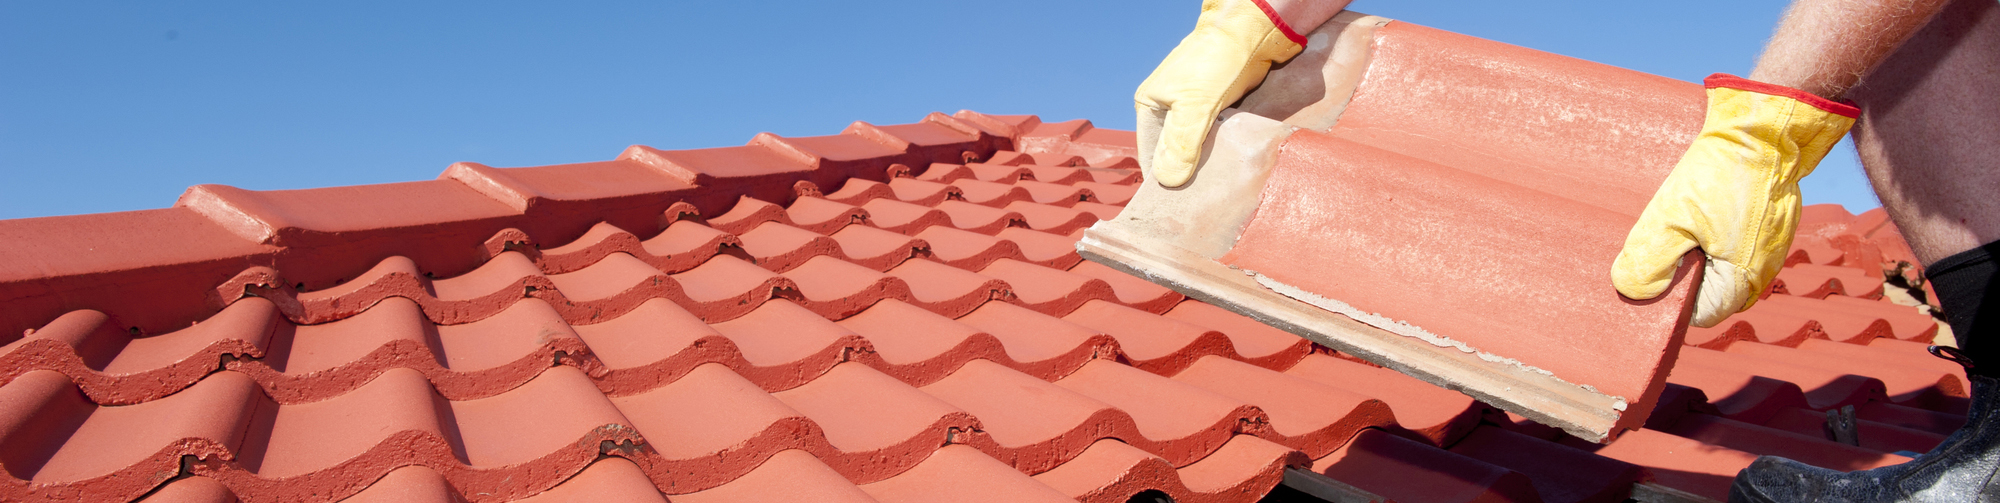 Man placing tile roof